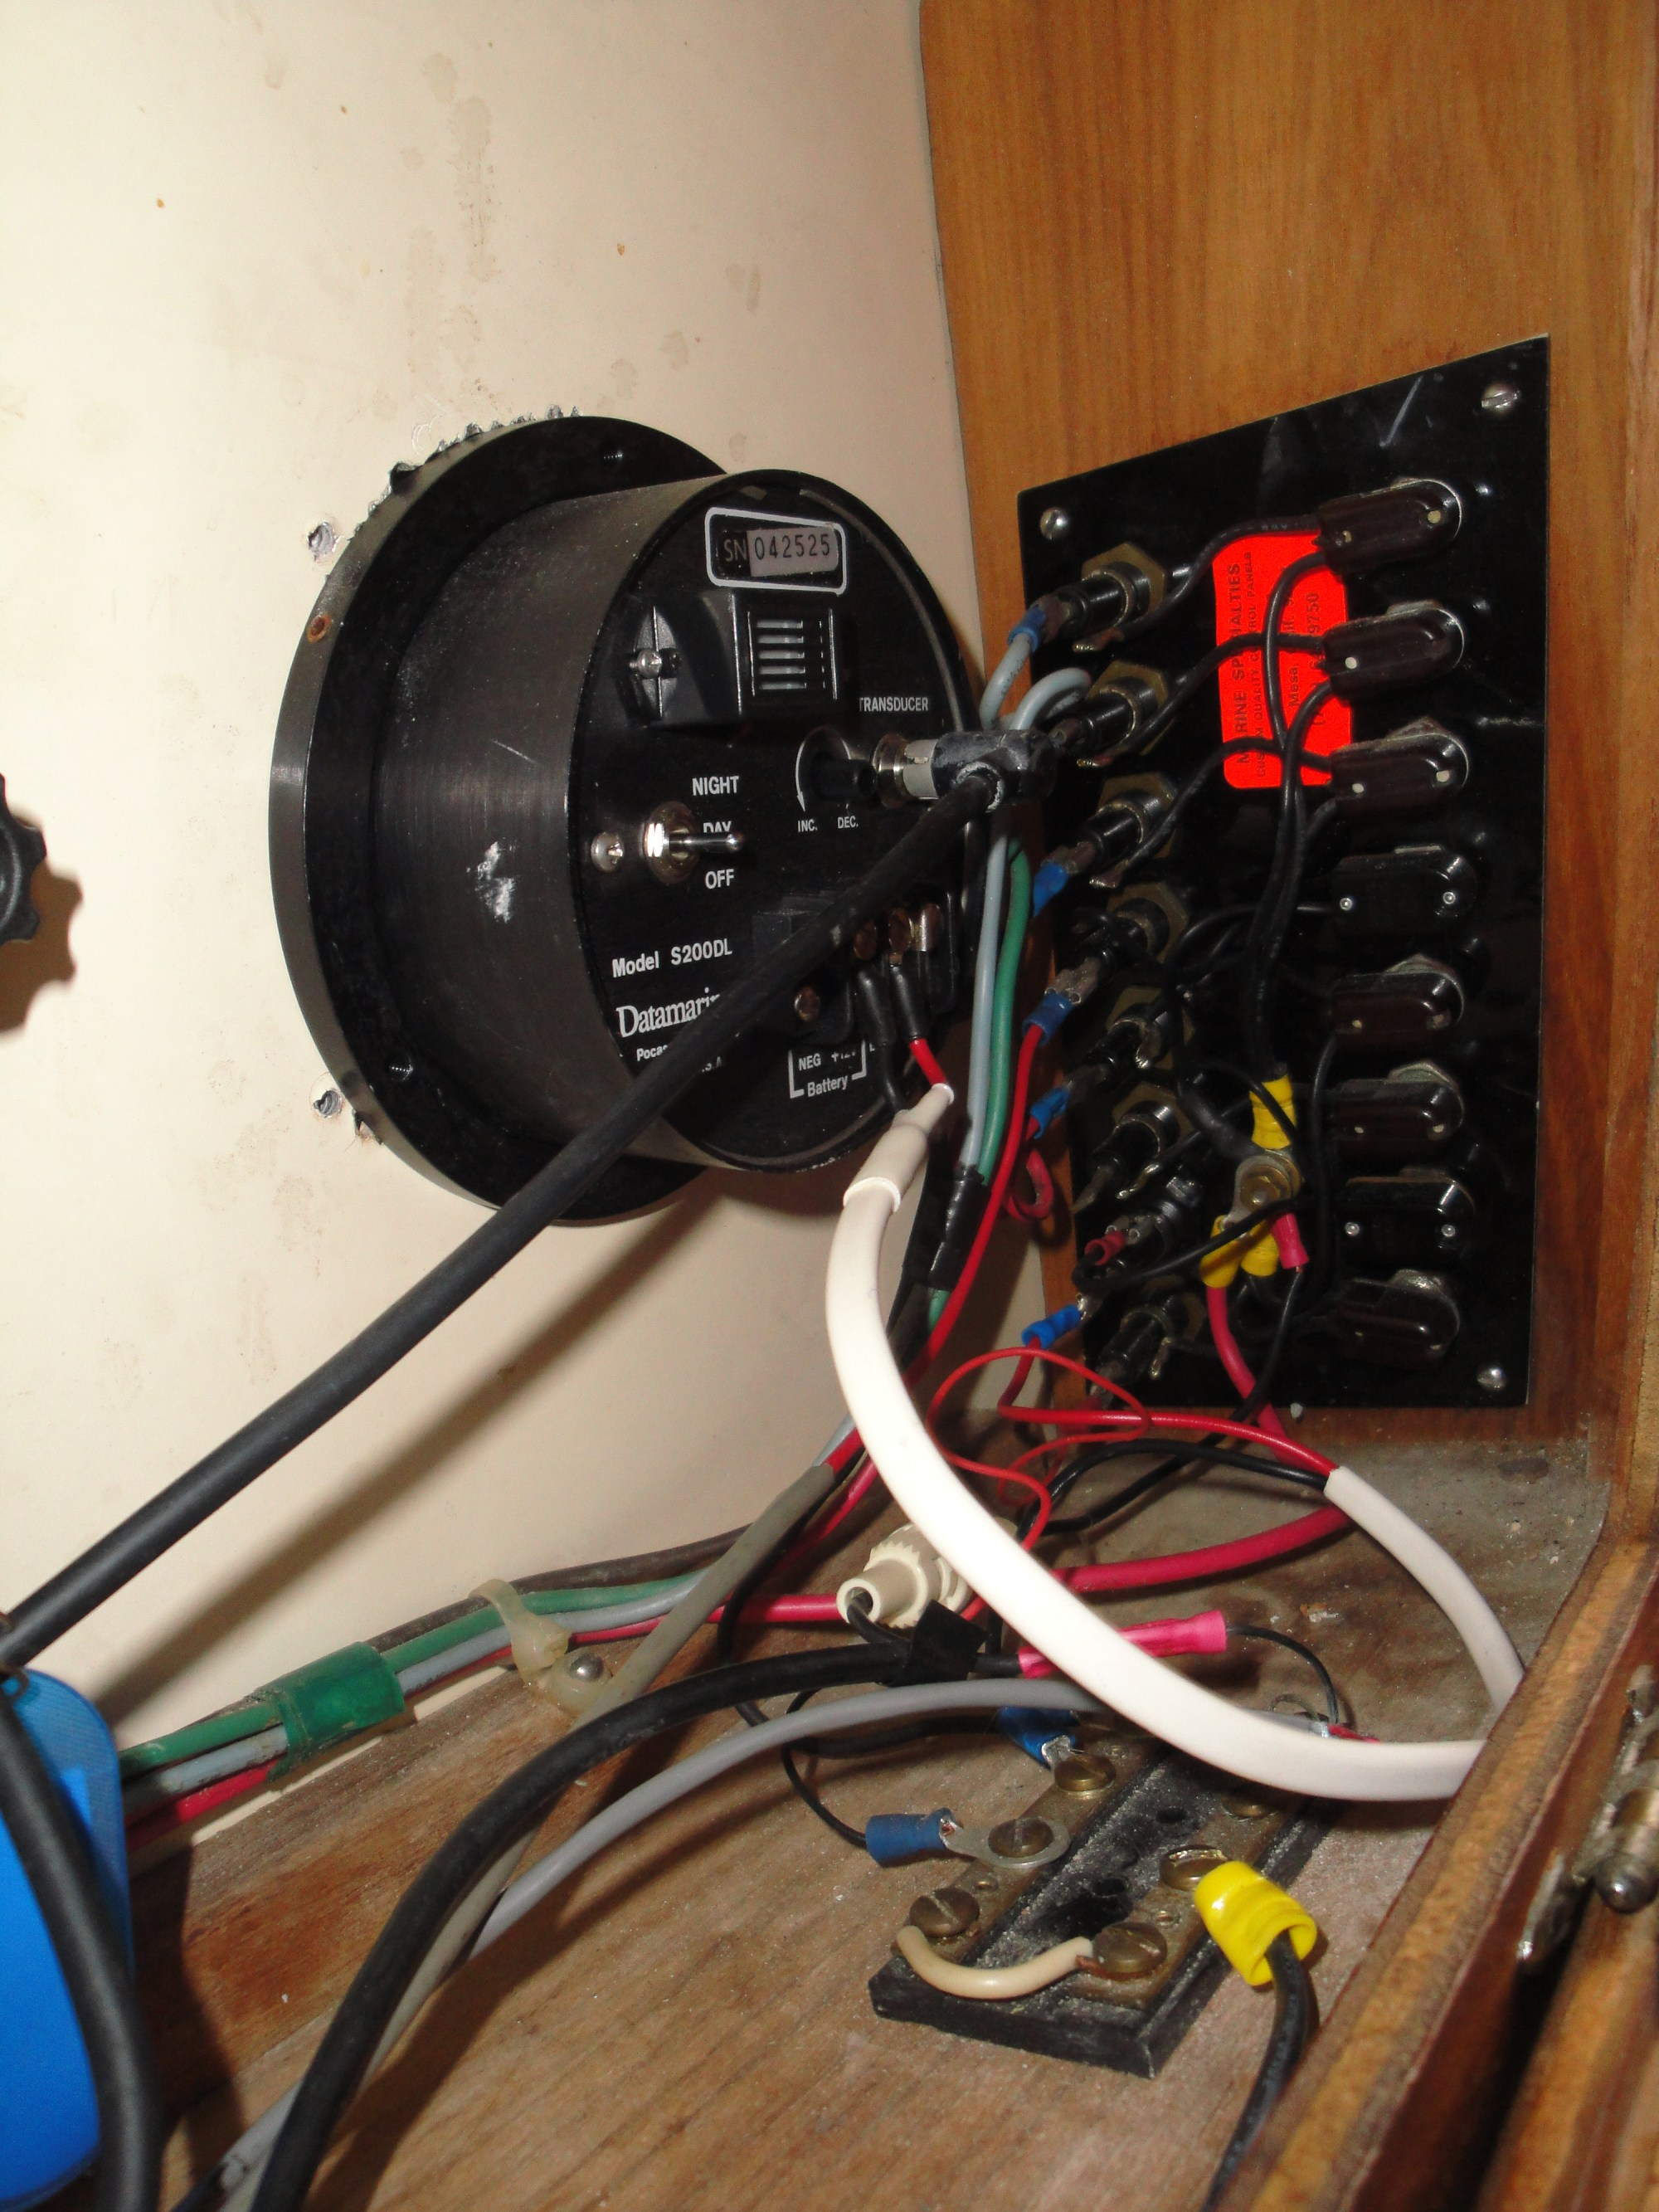 hight resolution of 12 volt house battery distribution panel boat wiring woman owned 12 volt lighted switch wiring 12 volt marine wiring